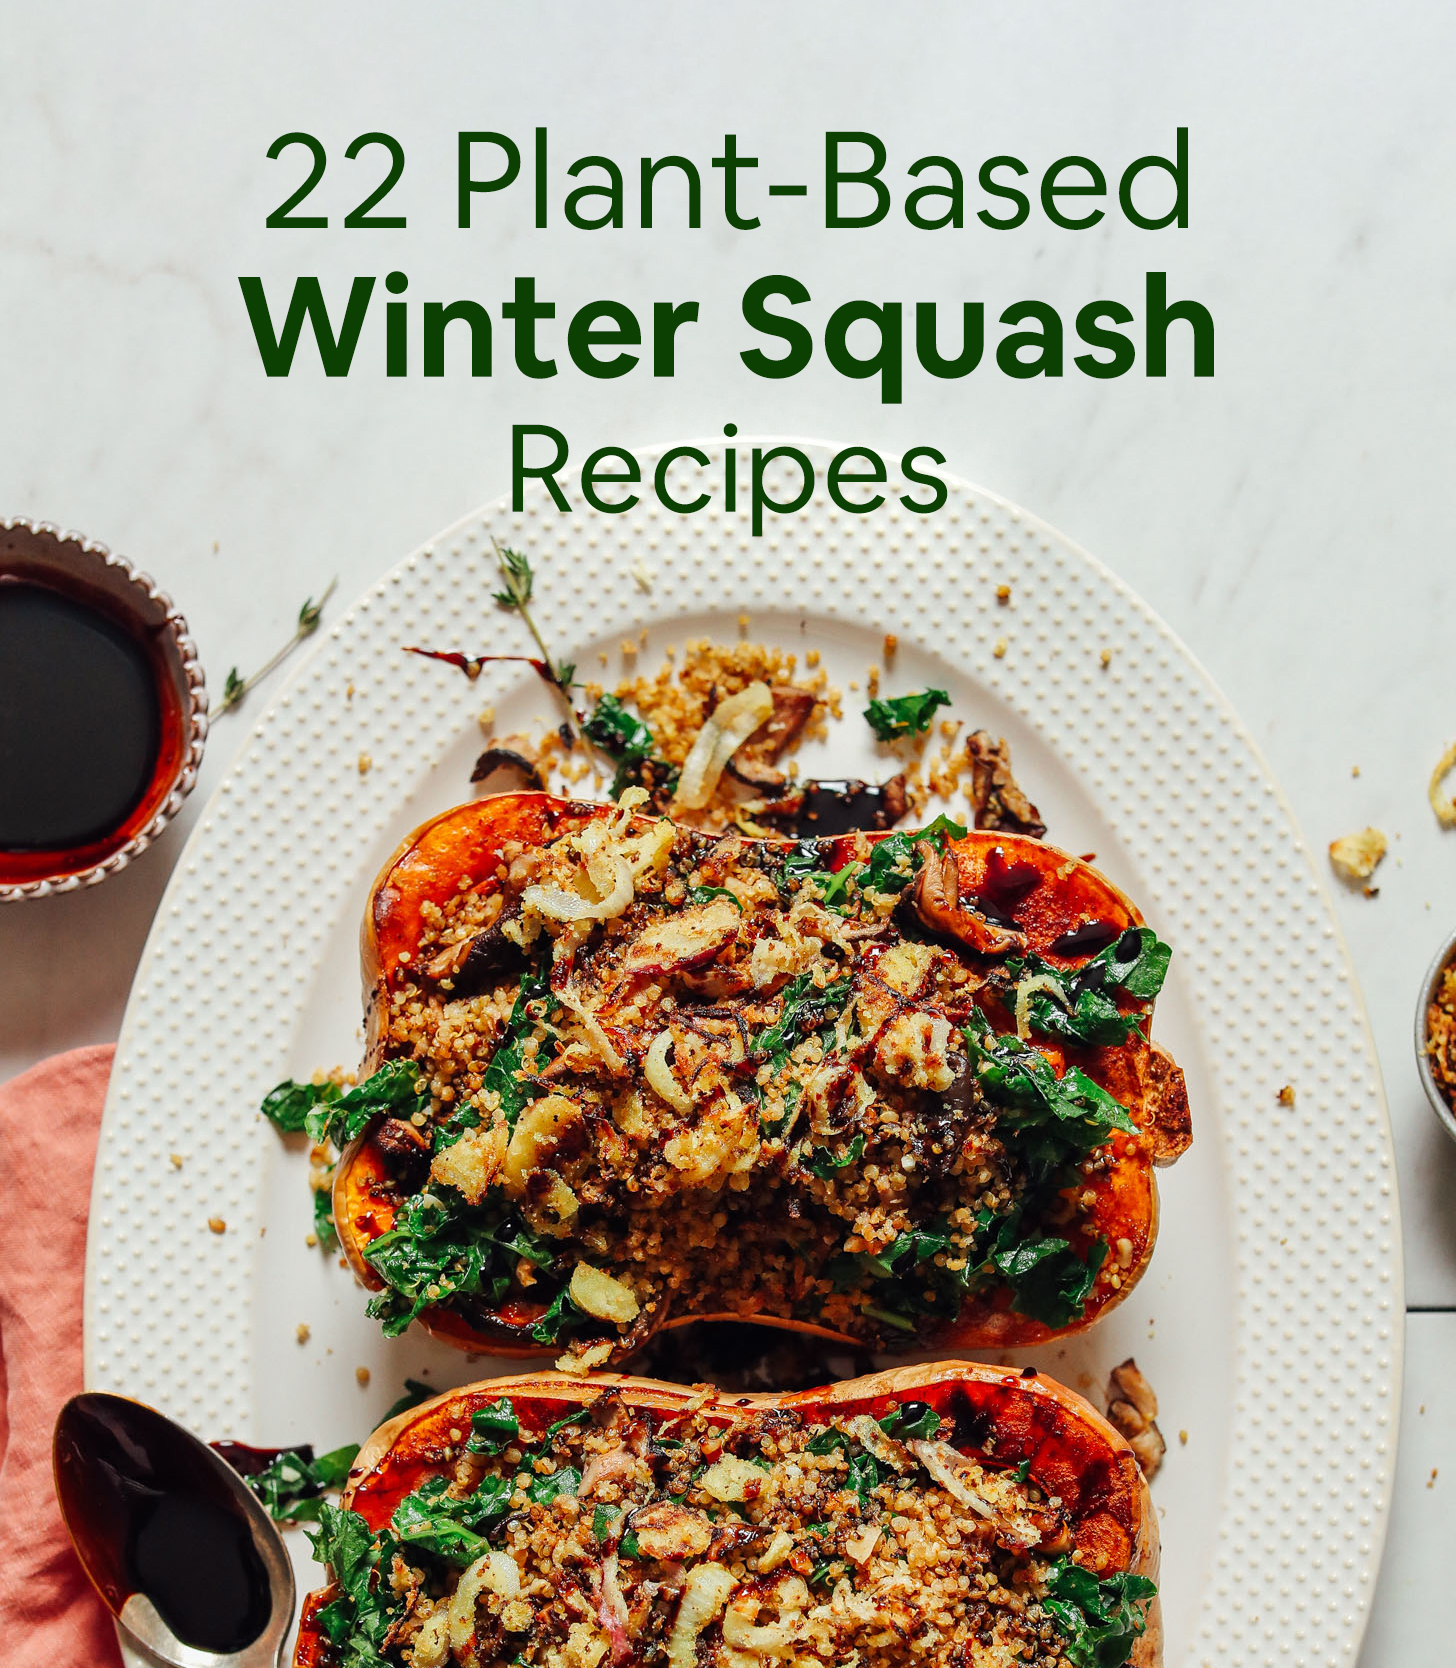 Platter of stuffed butternut squash for our roundup of plant-based winter squash recipes